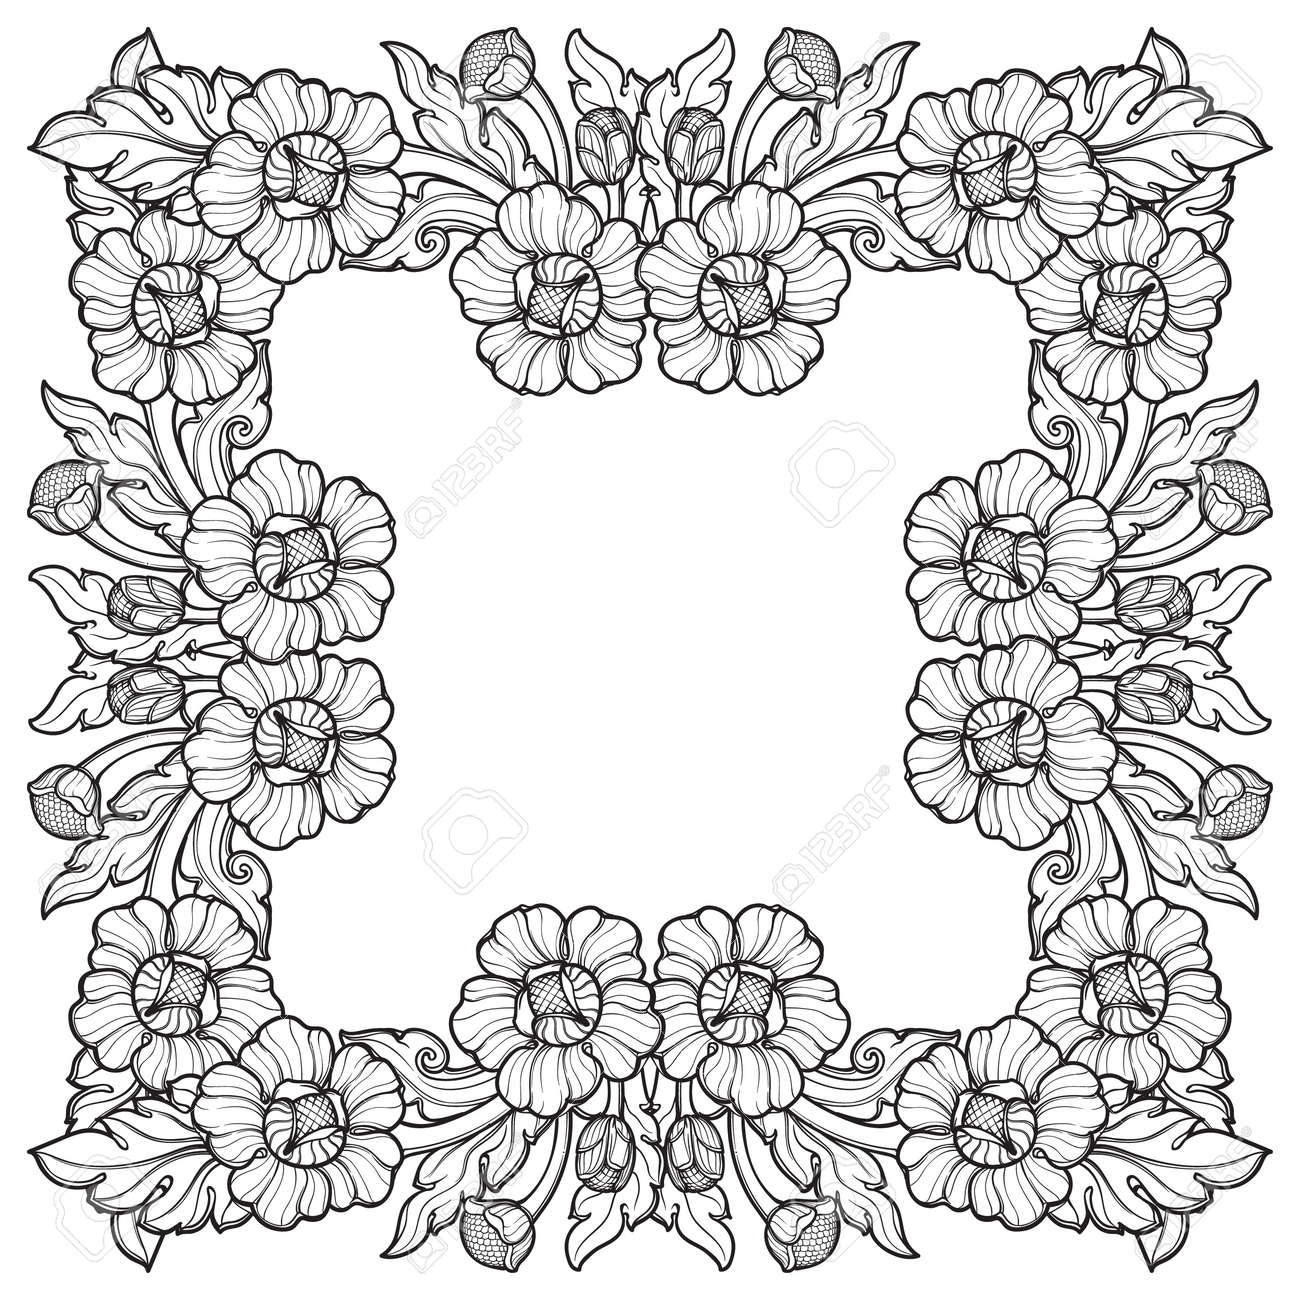 Lotus flowers arranged in intricate square frame popular decorative lotus flowers arranged in intricate square frame popular decorative motif in south eastern asia izmirmasajfo